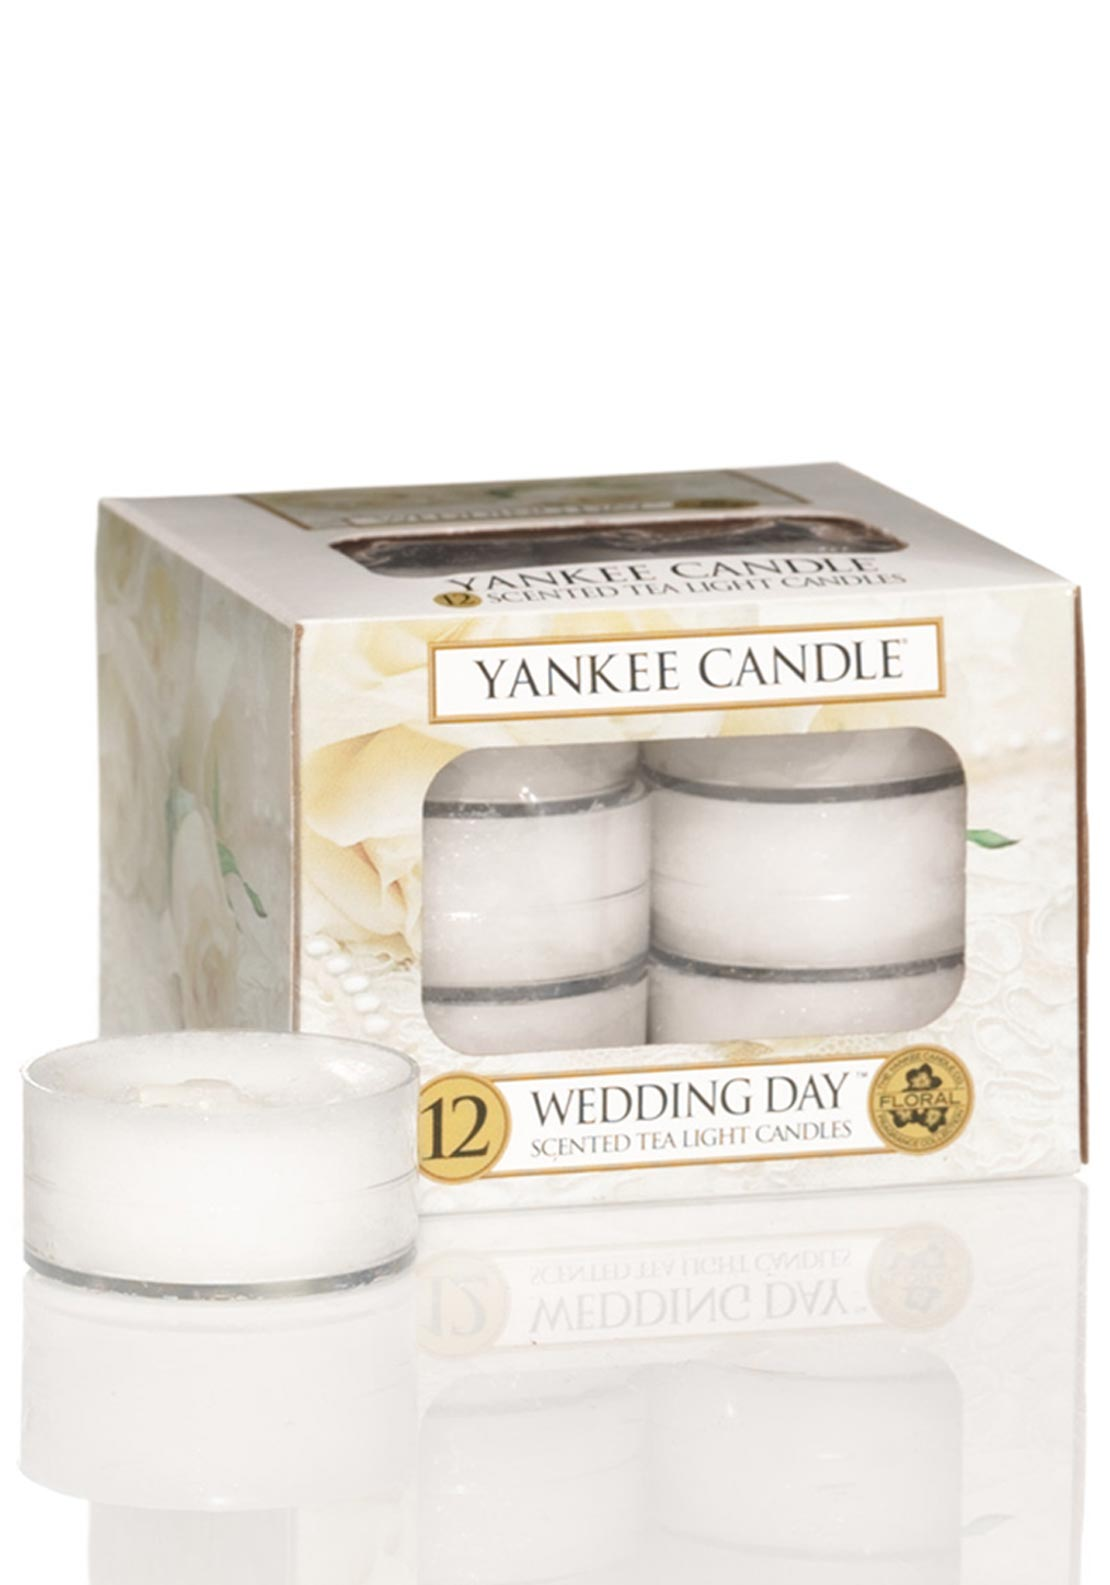 Yankee Candle 12 Scented Tea Light Candles, Wedding Day